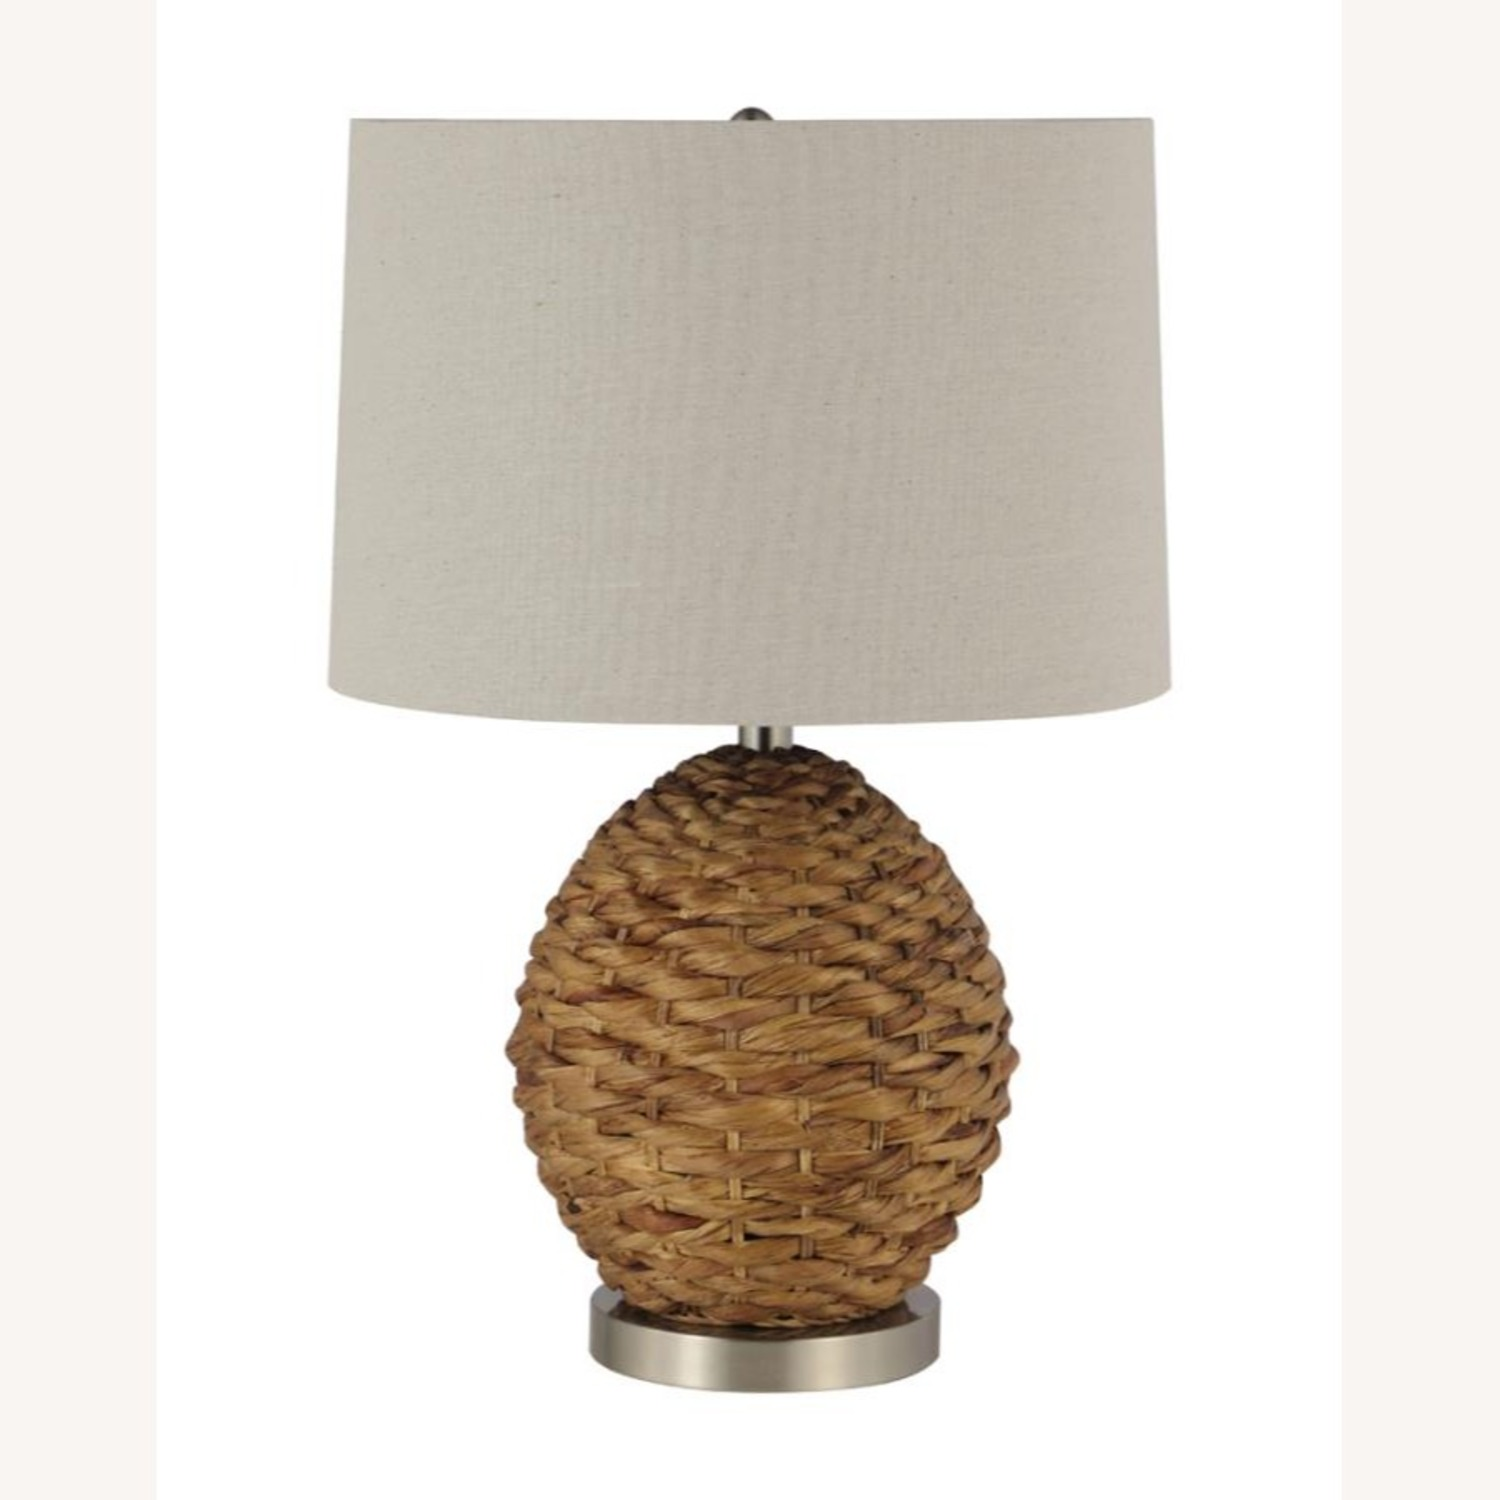 Table Lamp In Beige & Brown Rattan Weave Finish - image-2